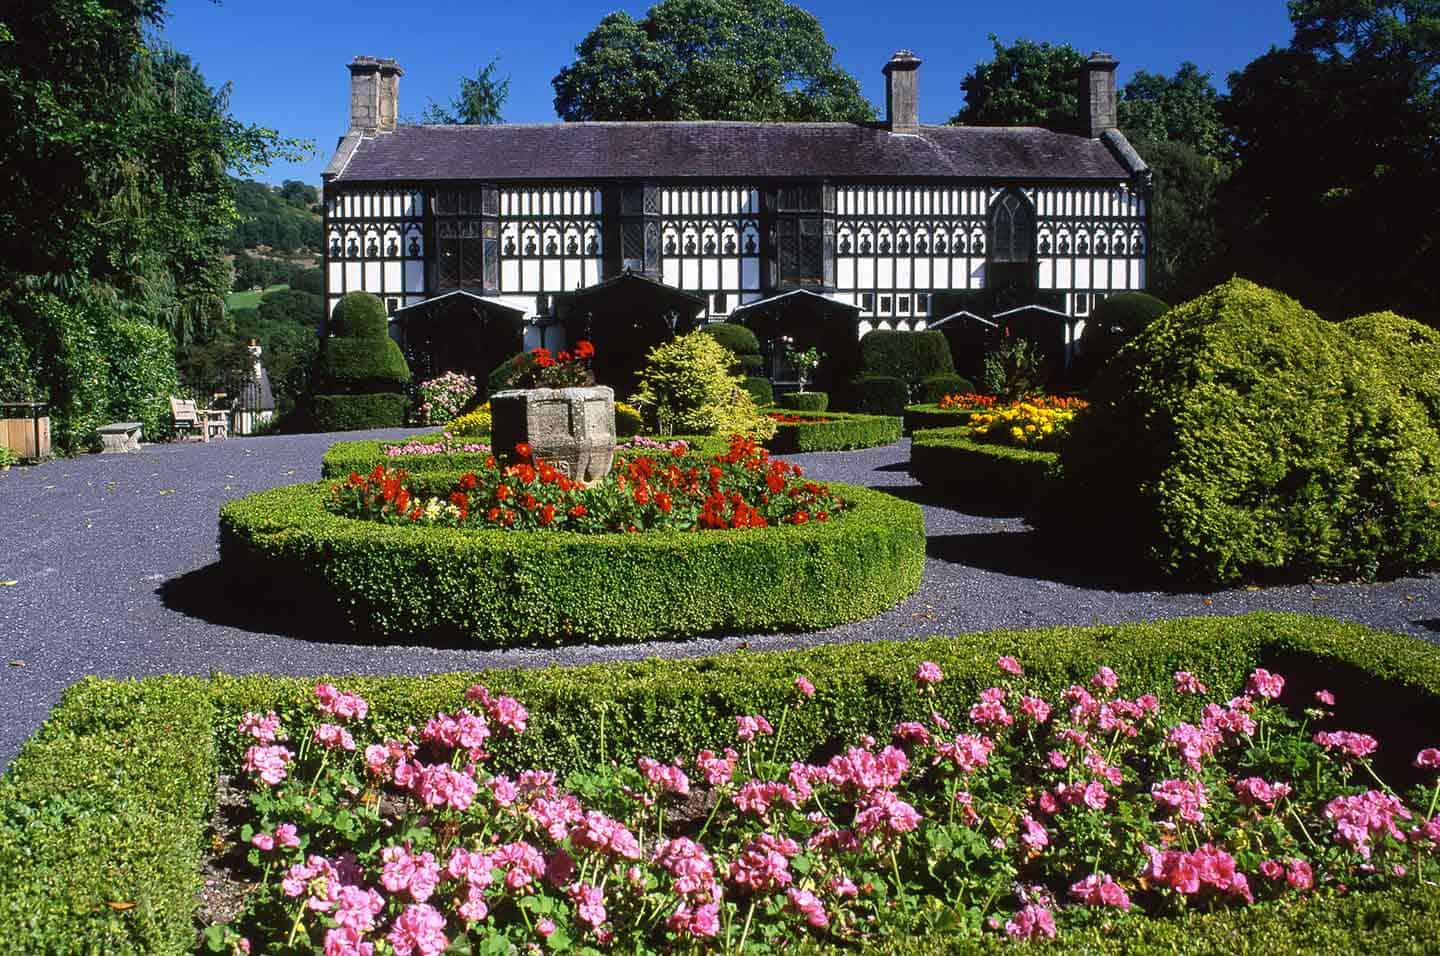 Image of the gardens and house at Plas Newydd, Llangollen